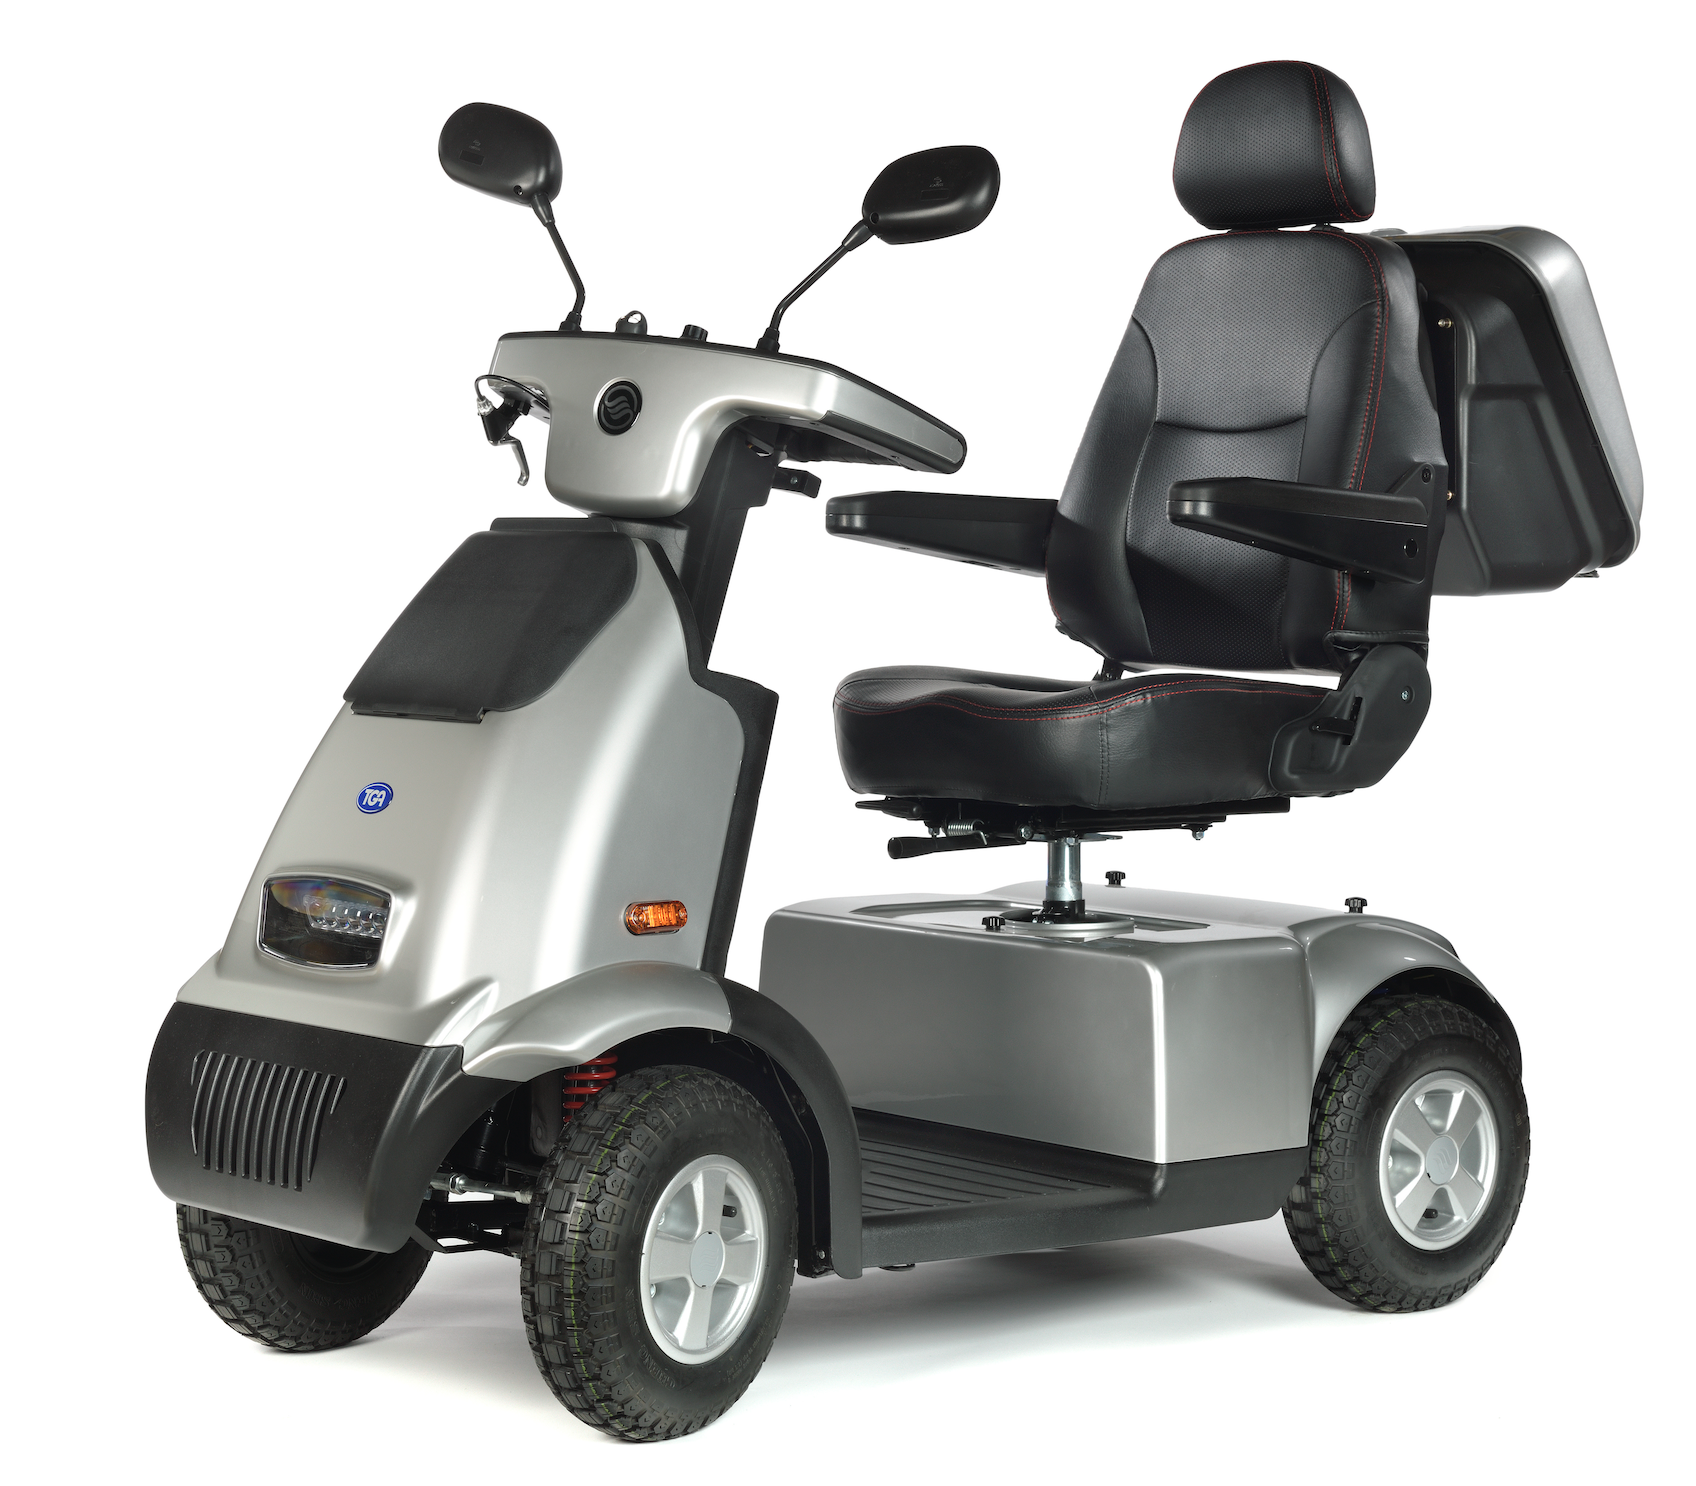 2020 TGA breeze midi 4 mobility scooter silver